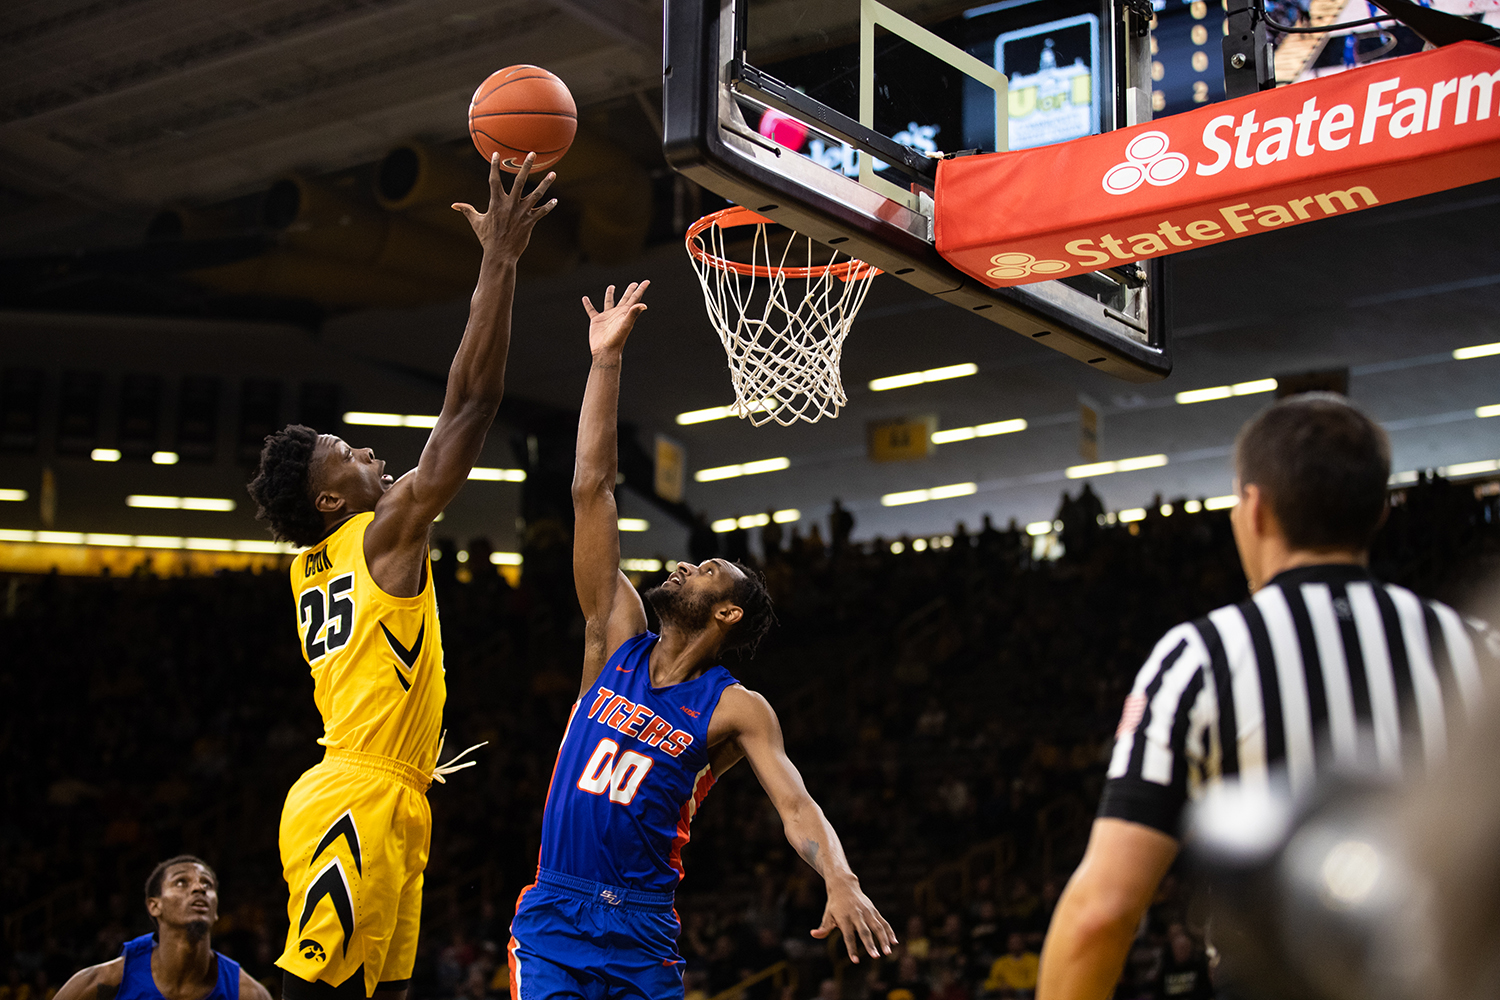 Iowa+forward+Tyler+Cook+%2325+attempts+to+get+a+rebound+during+the+men%27s+basketball+game+against+Savannah+State+at+Carver-Hawkeye+Arena+on+Tuesday%2C+December+22%2C+2018.+The+Hawkeyes+defeated+the+Tigers+110-64.